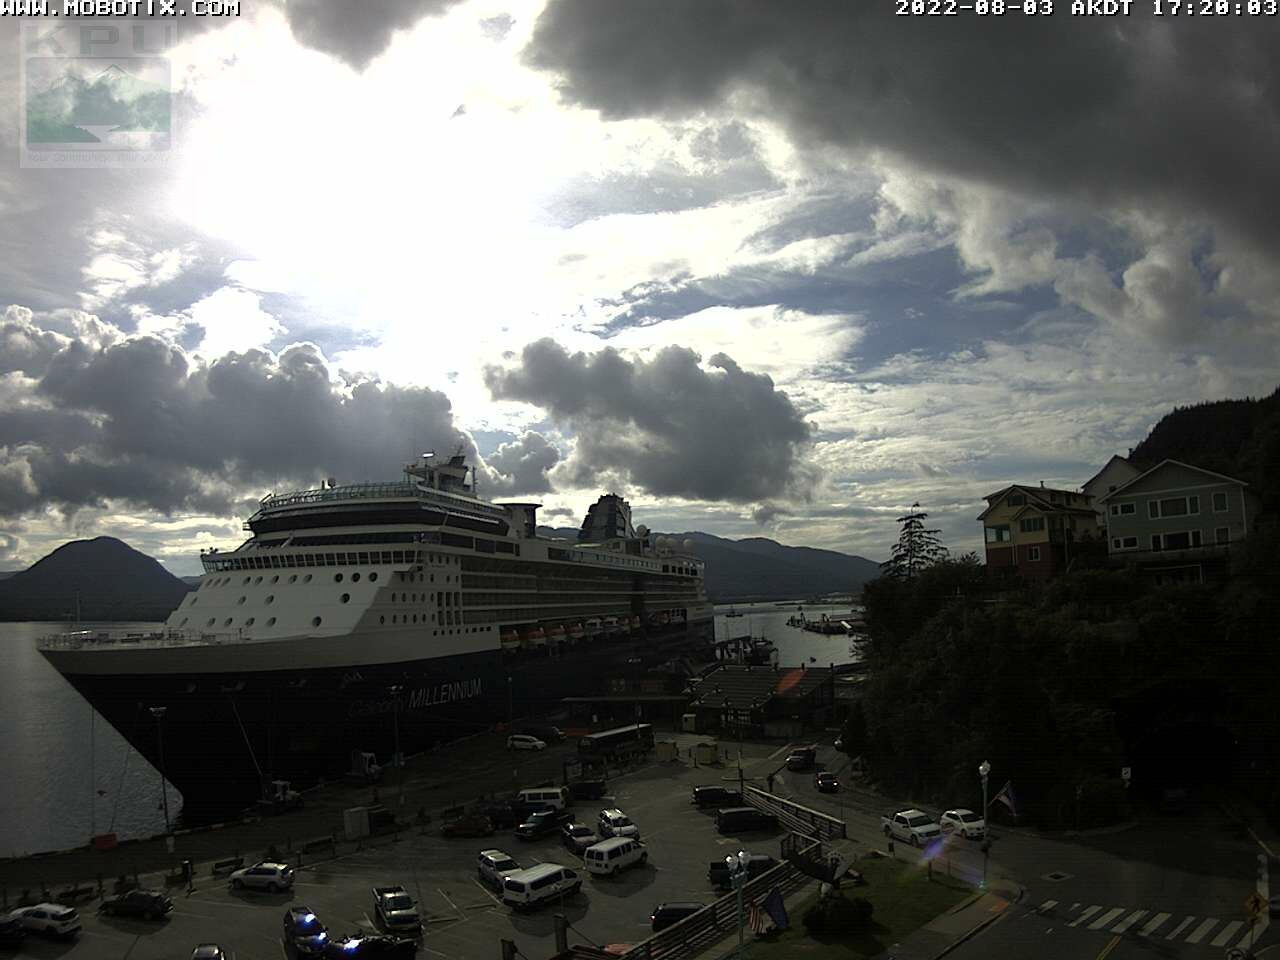 Current Ketchikan Webcam #2 Alaska-sized Image